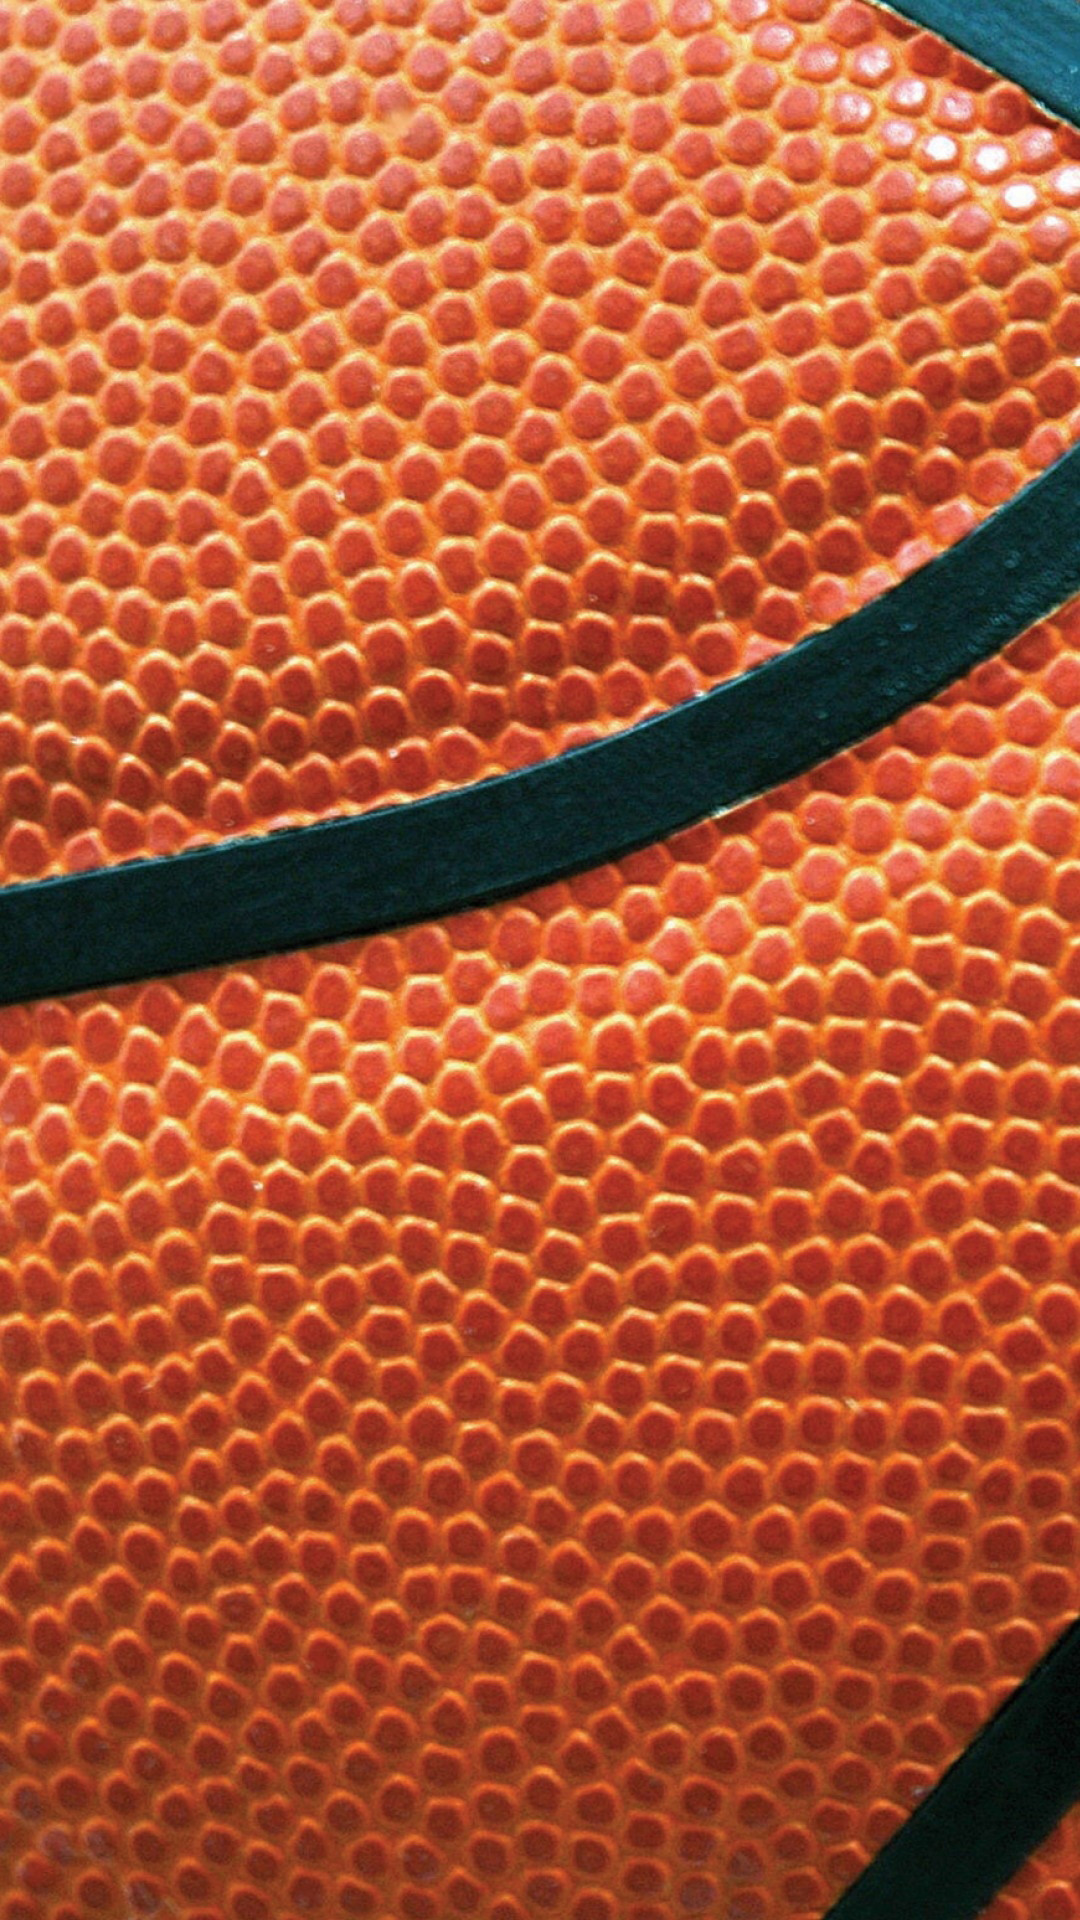 … iphone 7 wallpaper sports; basketball close up android wallpaper free  download …